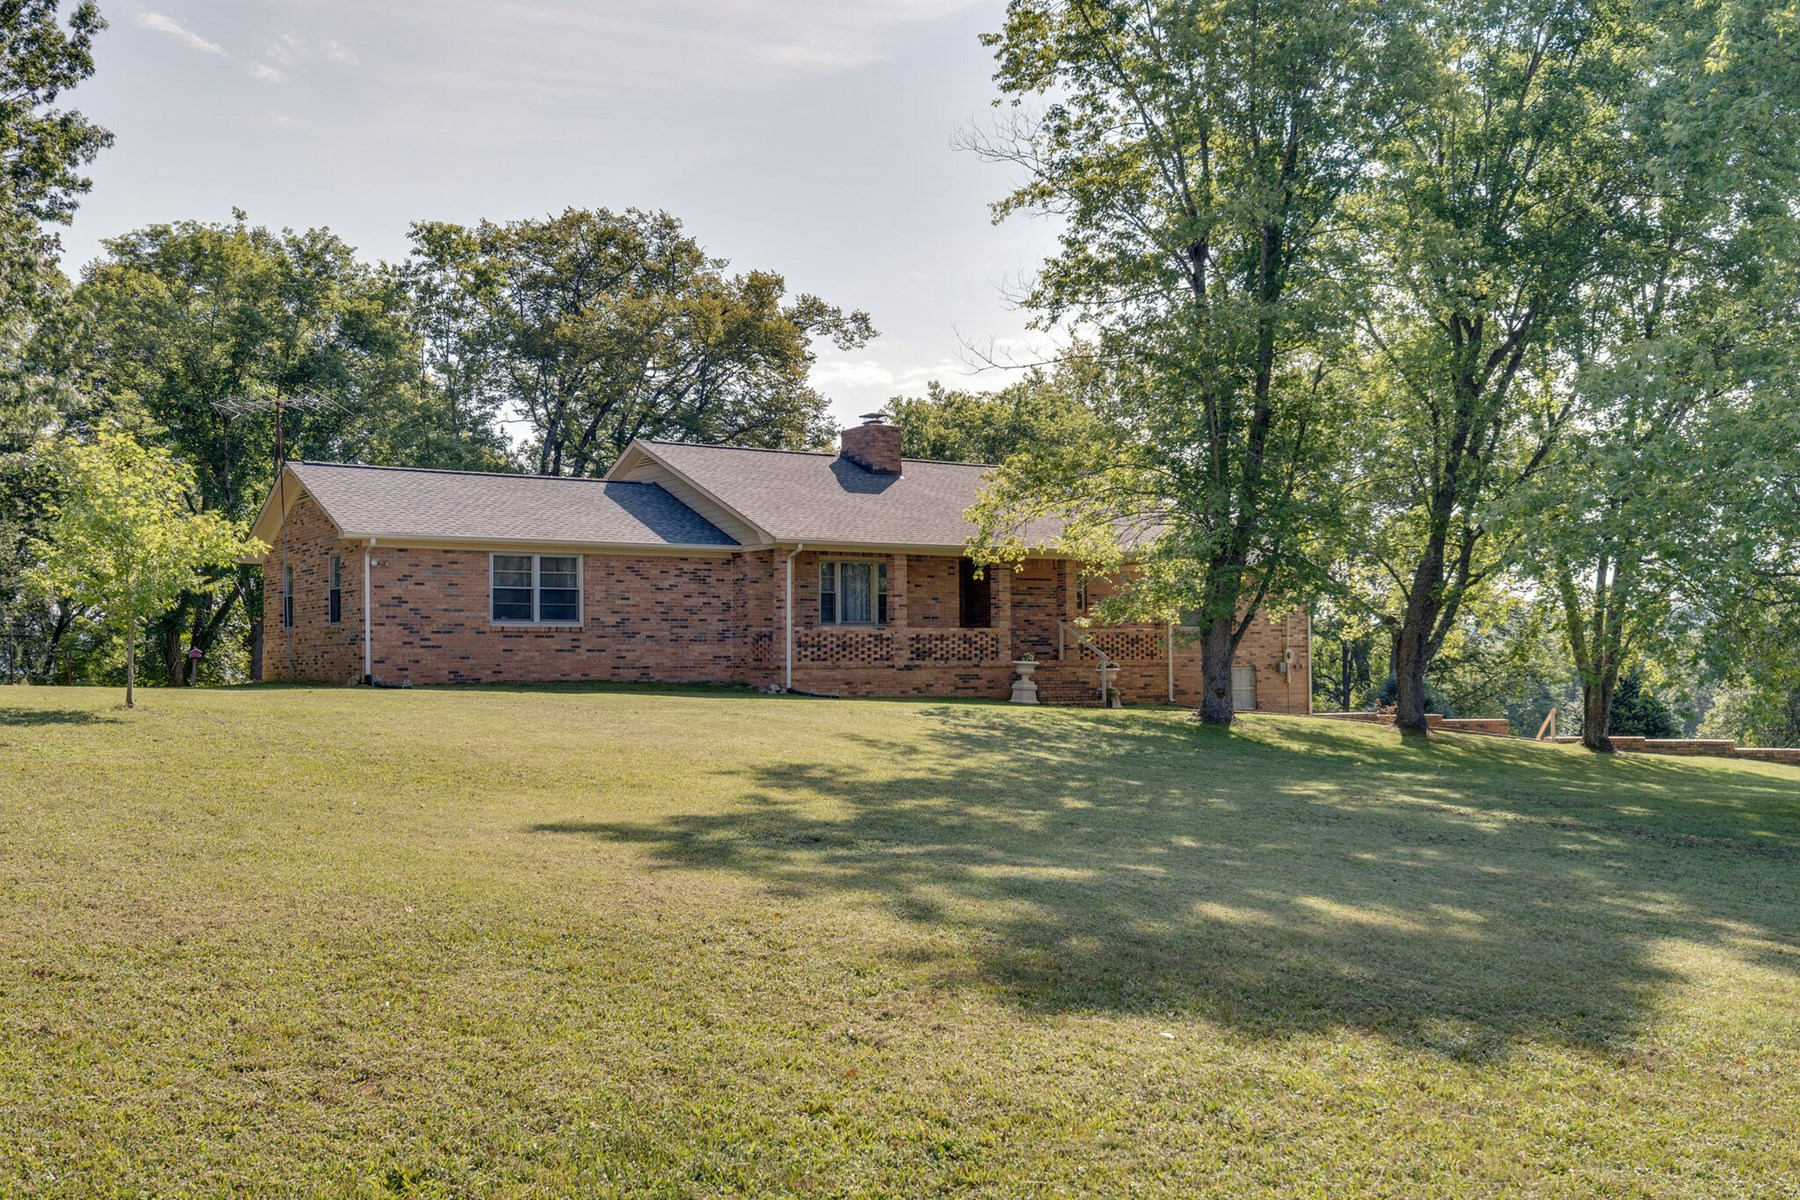 Country Home with Acreage for Sale in Columbia, Tennessee